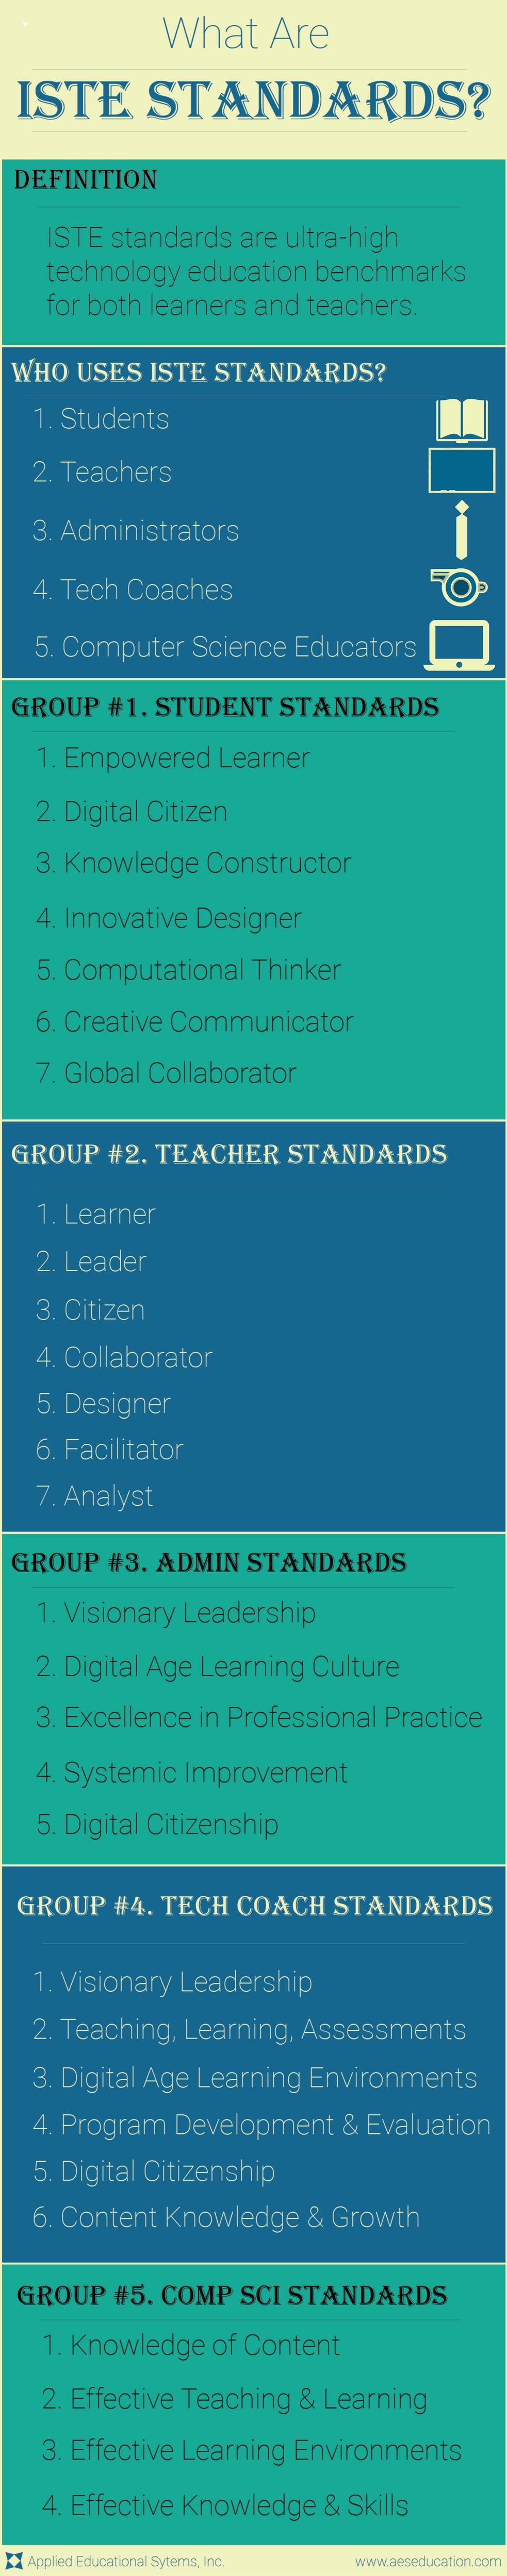 what-are-iste-standards-infographic-final